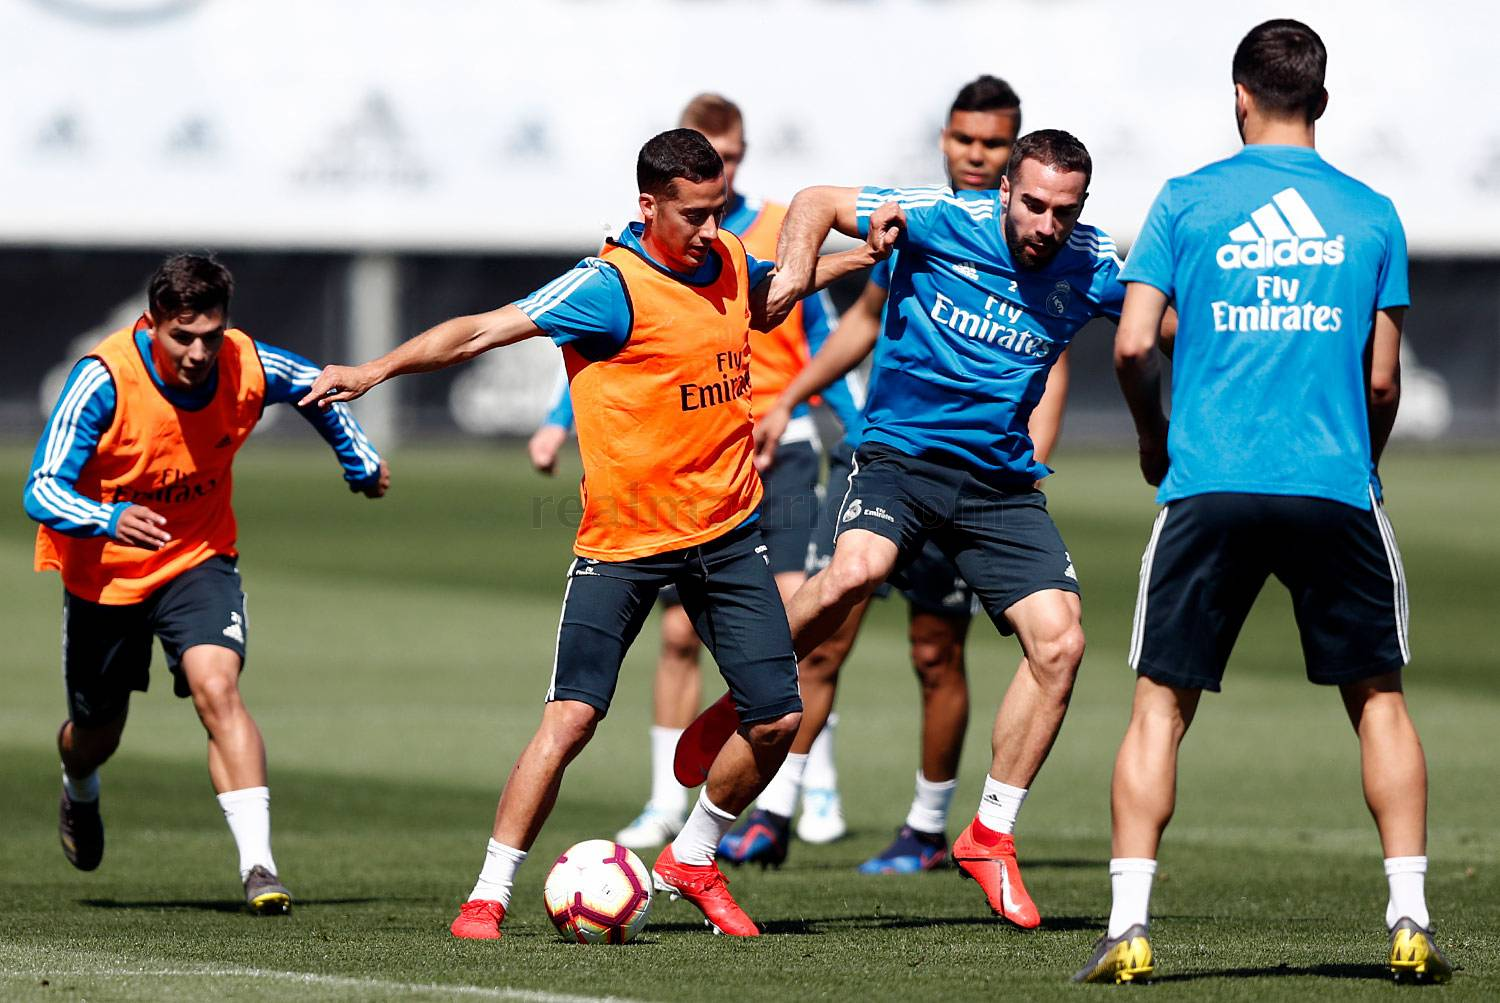 Real Madrid - Entrenamiento del Real Madrid - 04-05-2019